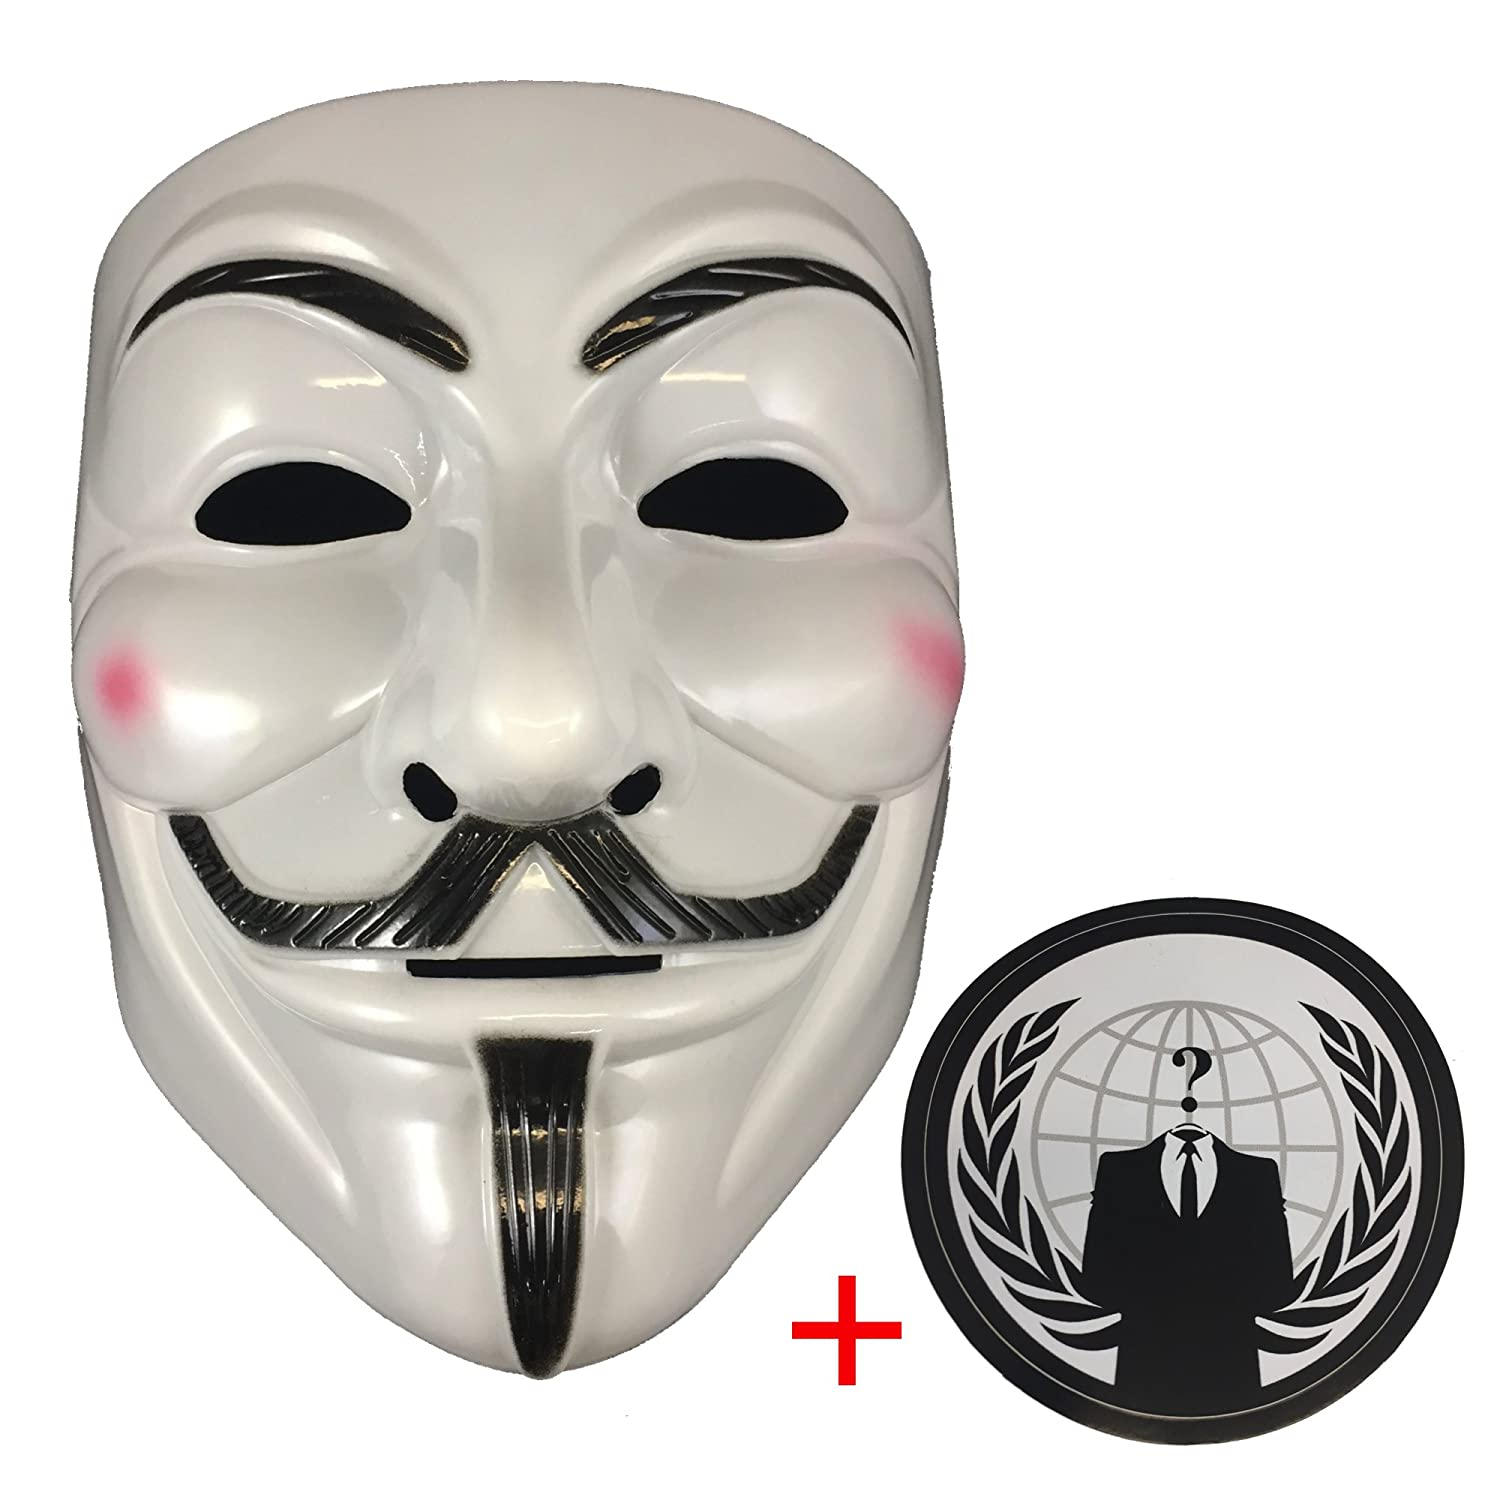 Jessters Anonymous Mask Plus Sticker, Guy Fawkes V for Vendetta, White Hacker Mask Bundled With Sticker. Liberty Trade Co.